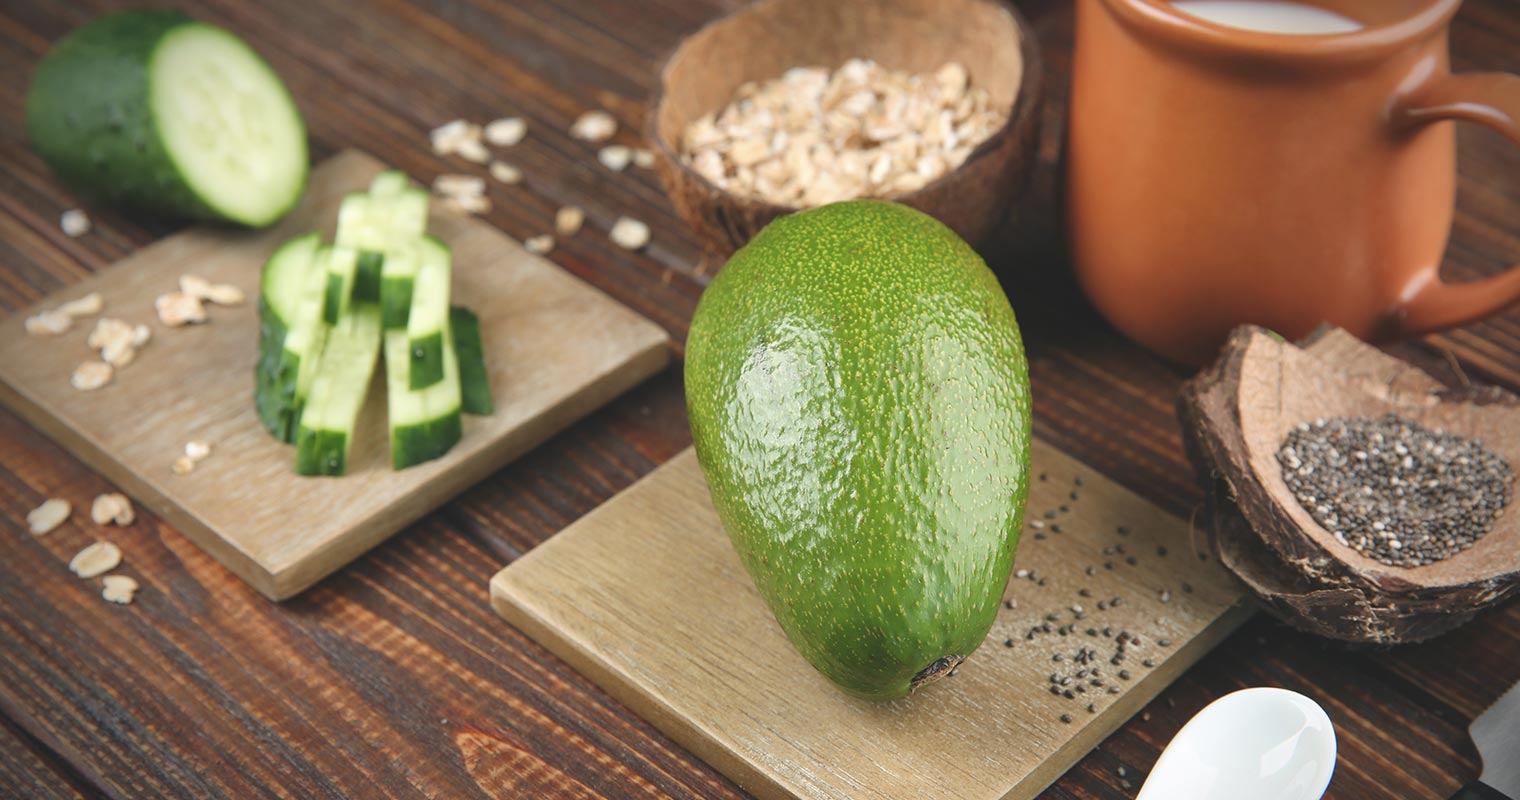 Anti-aging foods include avocado, cucumber, and oats - helps you have smoother skin.